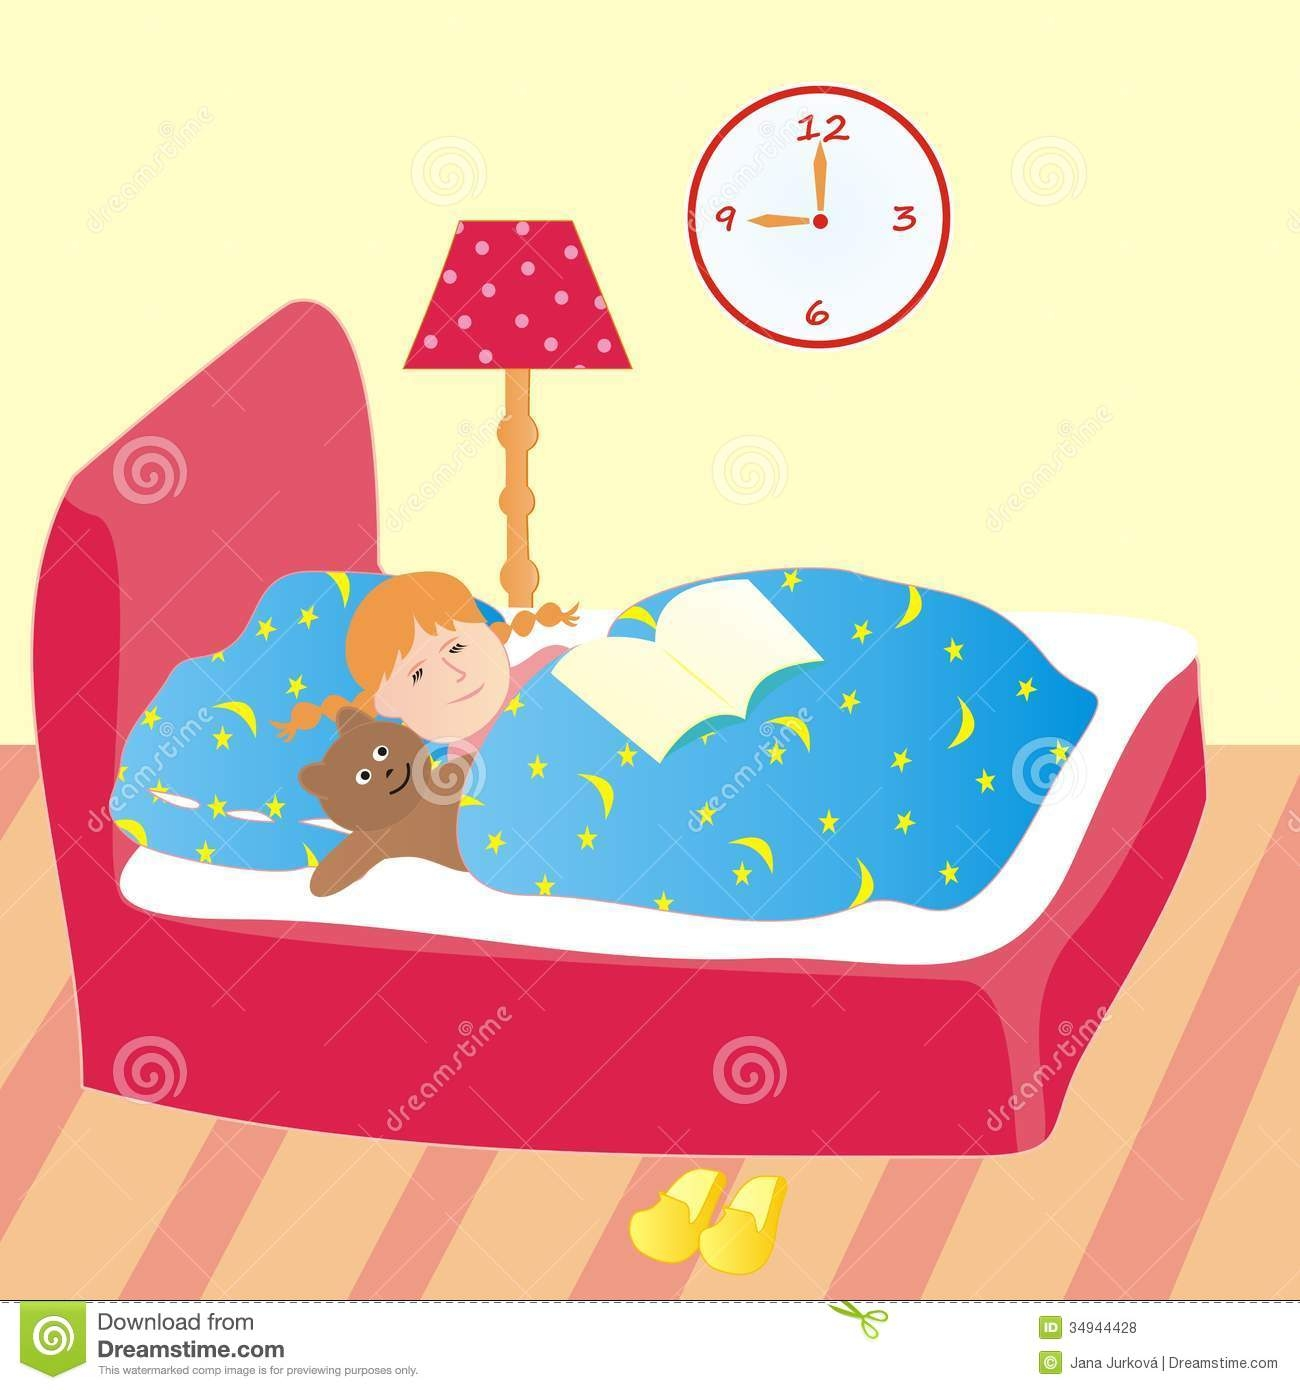 Dreaming clipart kid bed Going Girl Bed Kid Bed